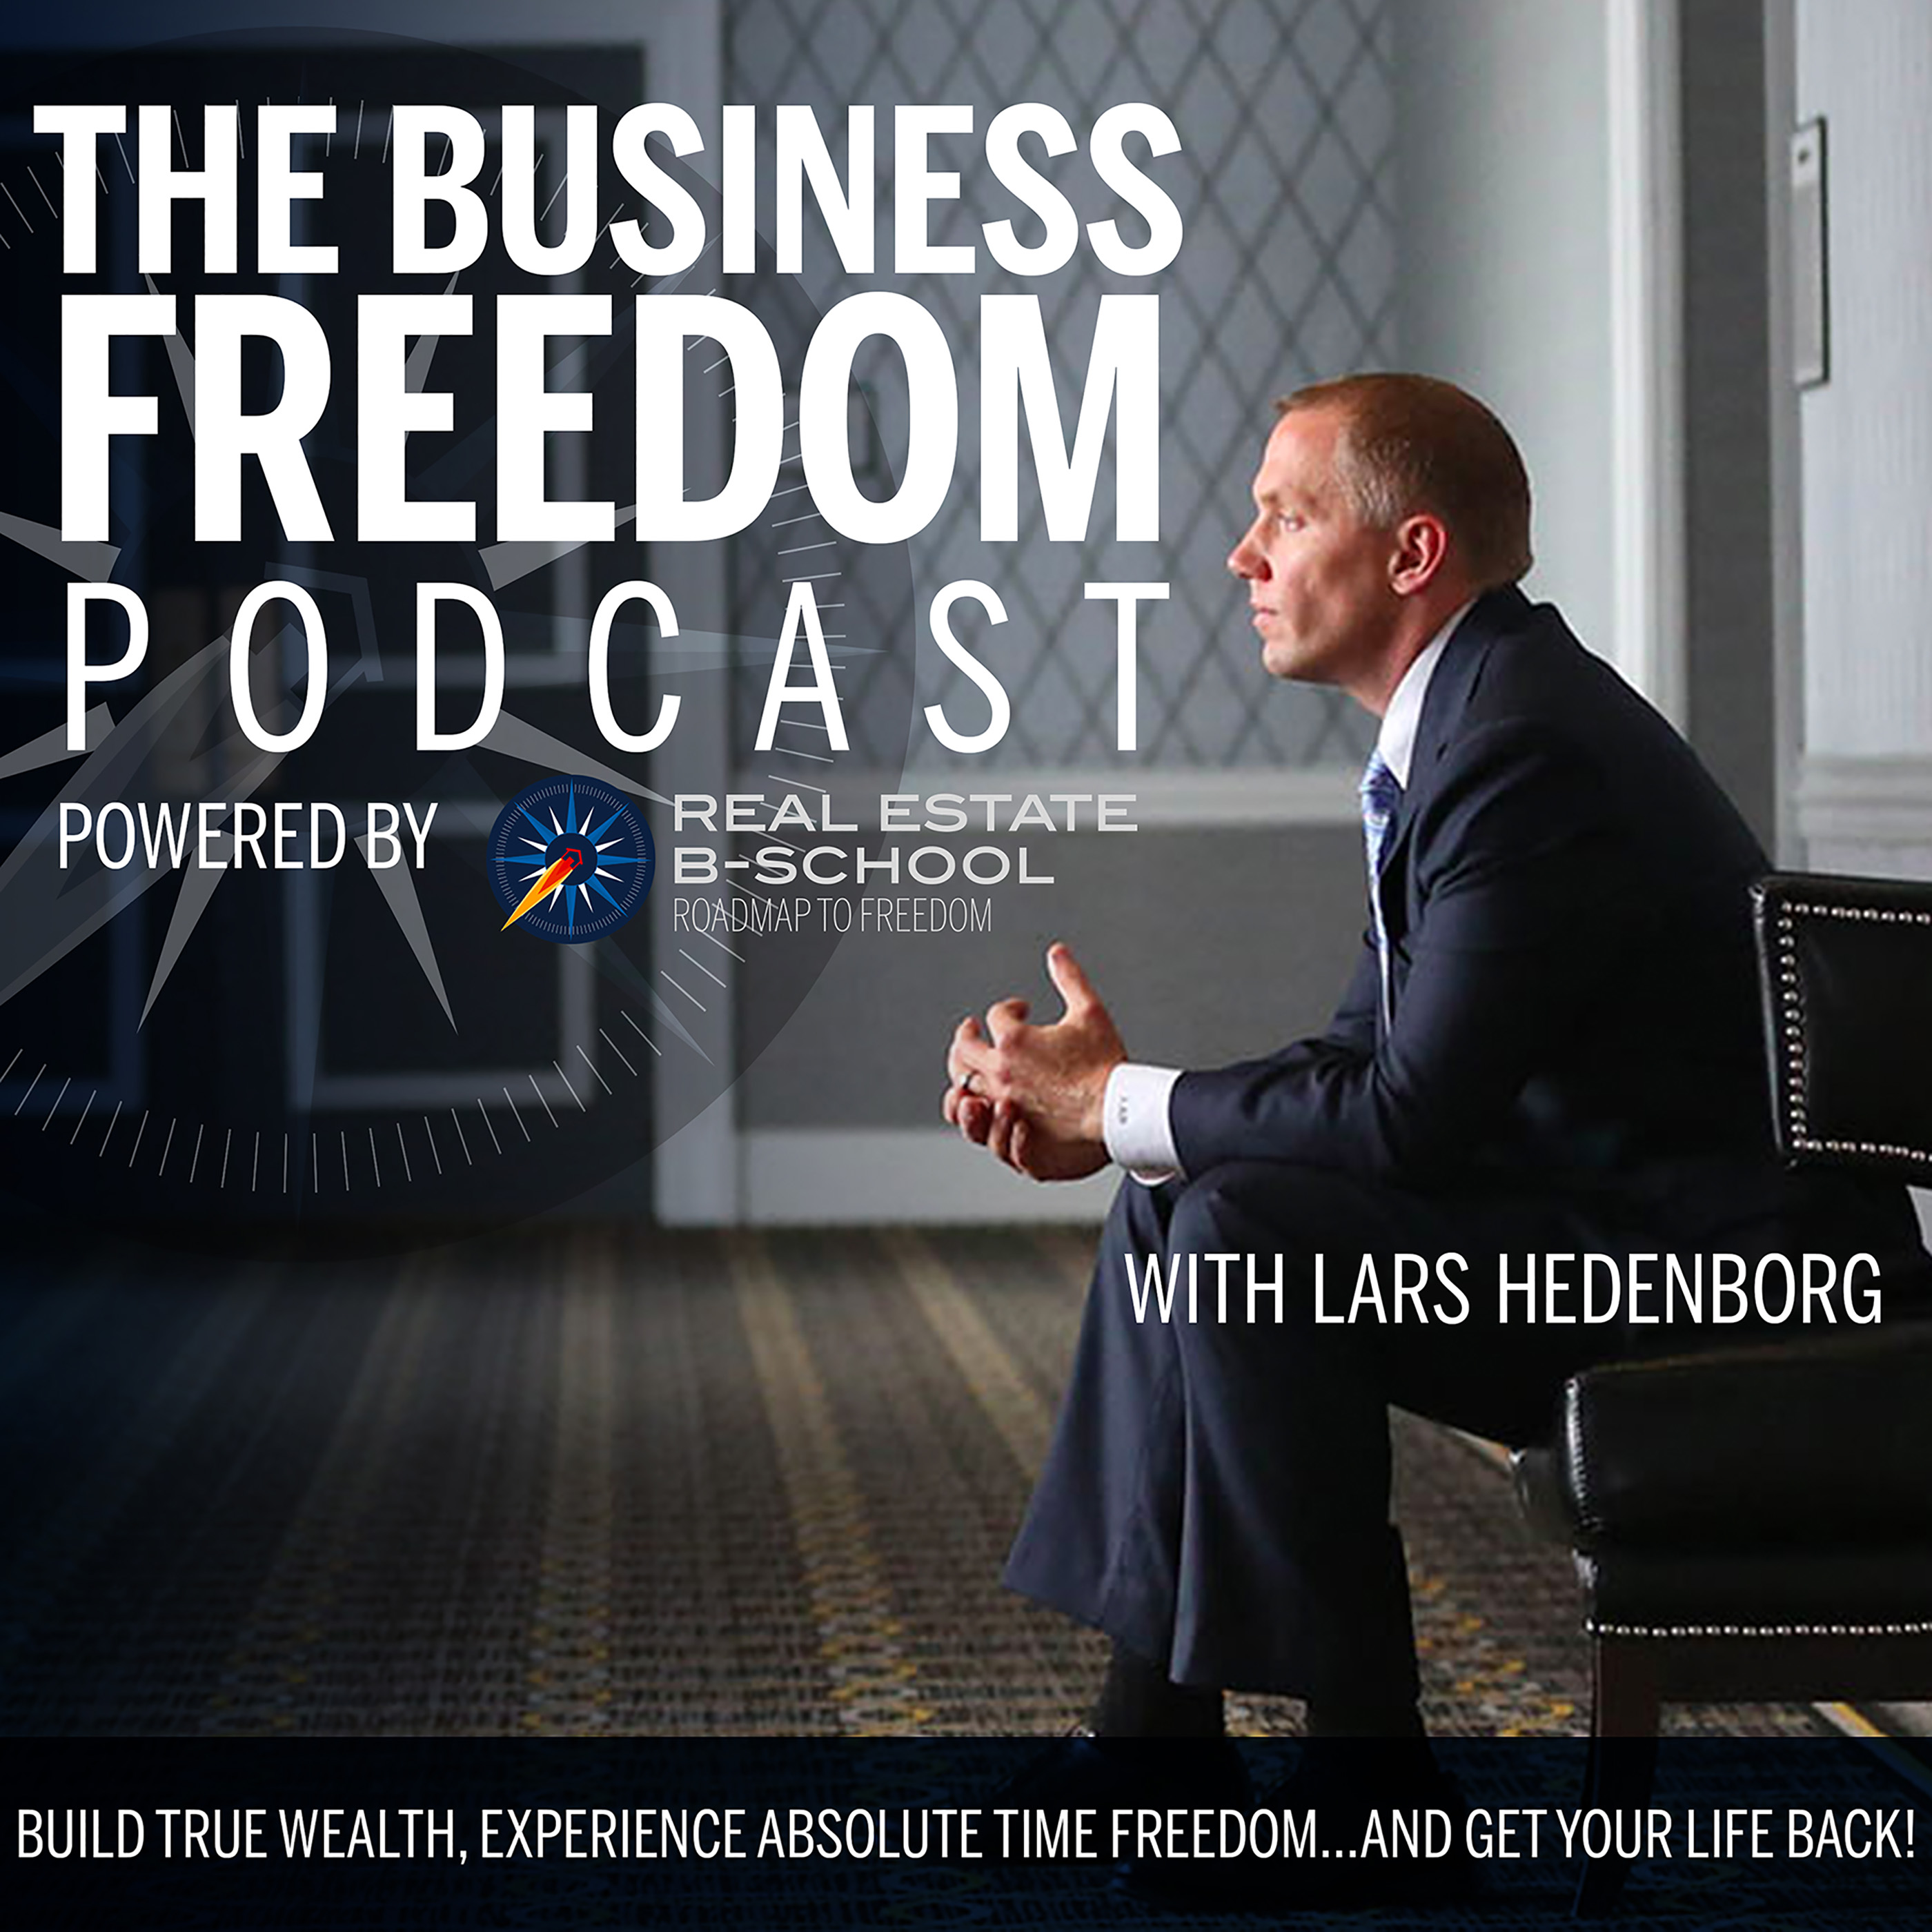 Business Freedom Podcast Powered by Real Estate B-School